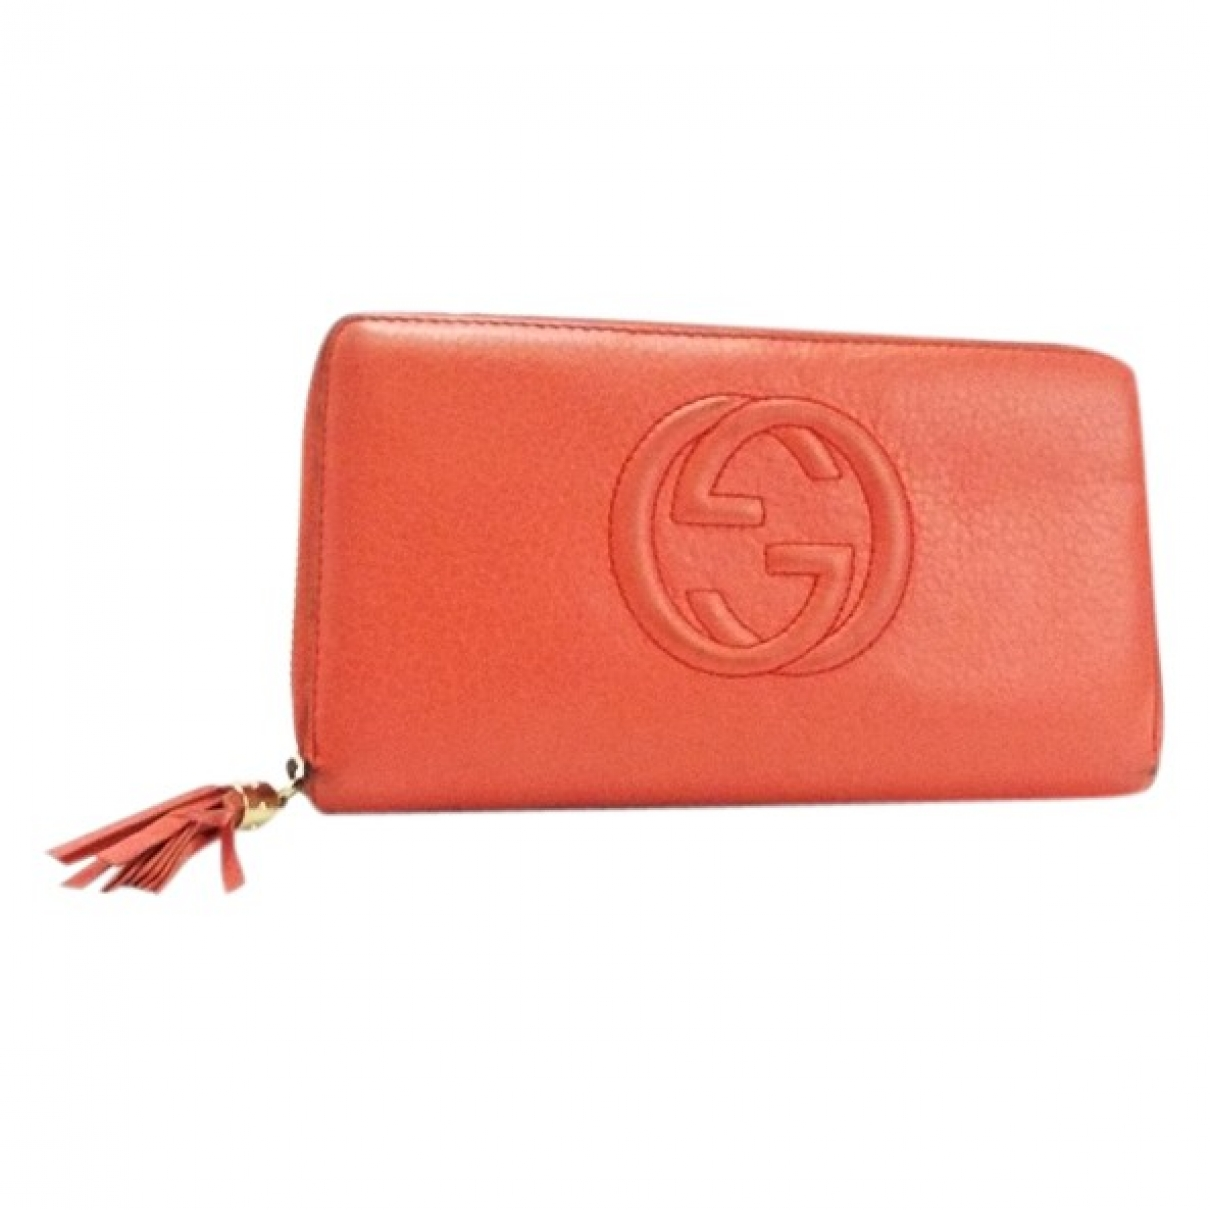 Gucci \N Orange Leather wallet for Women \N